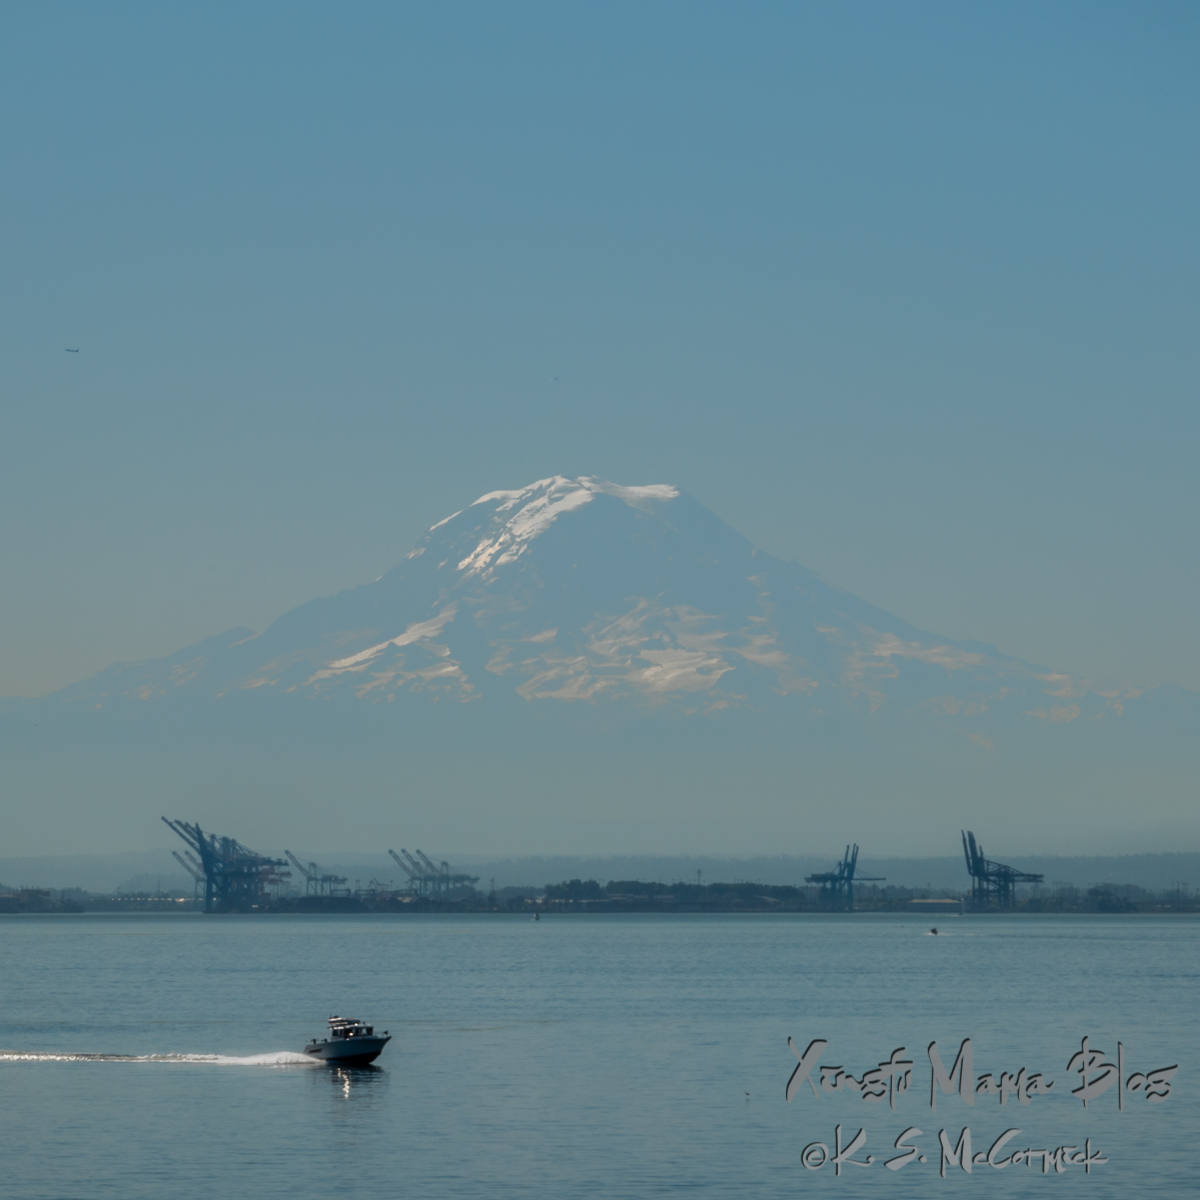 Baby blue morning: view of Mount Rainier and the port of Tacoma with a speed boat in the foreground. Photo taken from a ferry on the Puget Sound